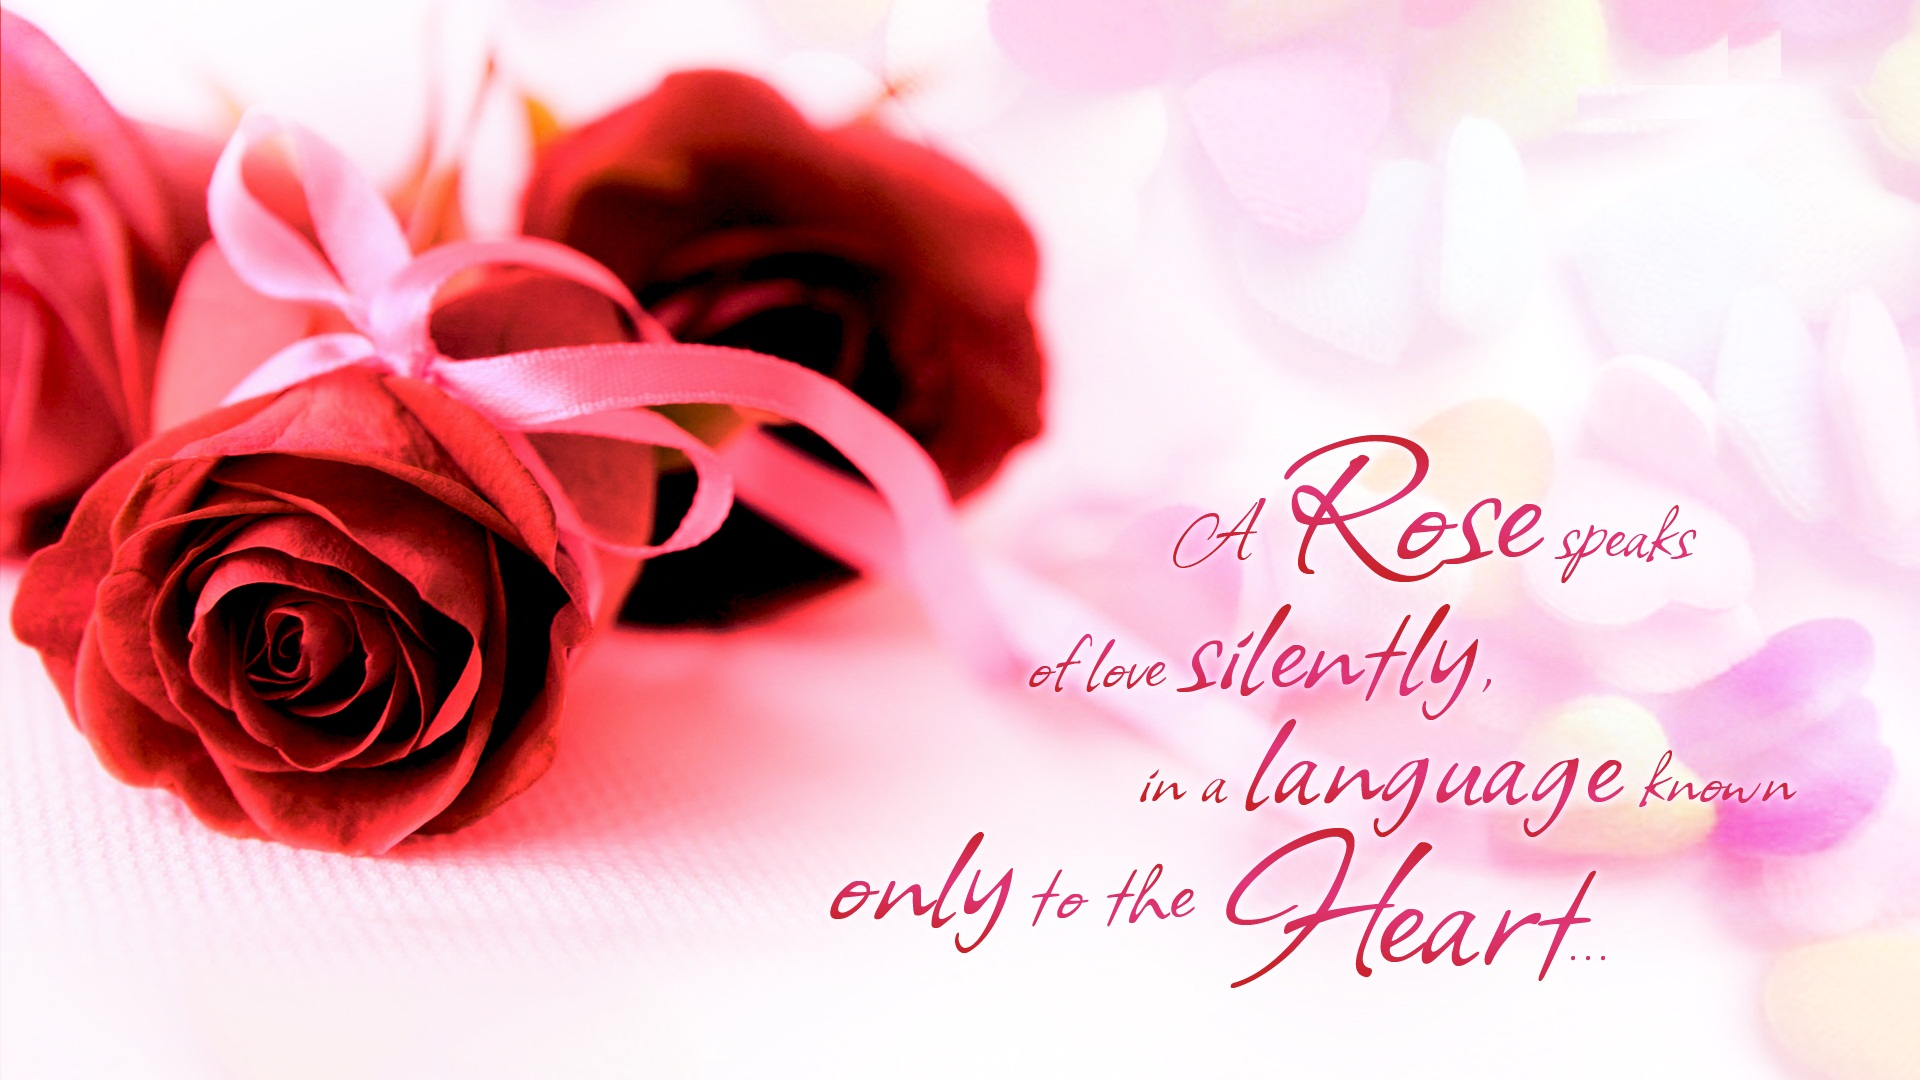 HAPPY ROSE DAY – GIFTS & HD Wallpapers for Rose Day